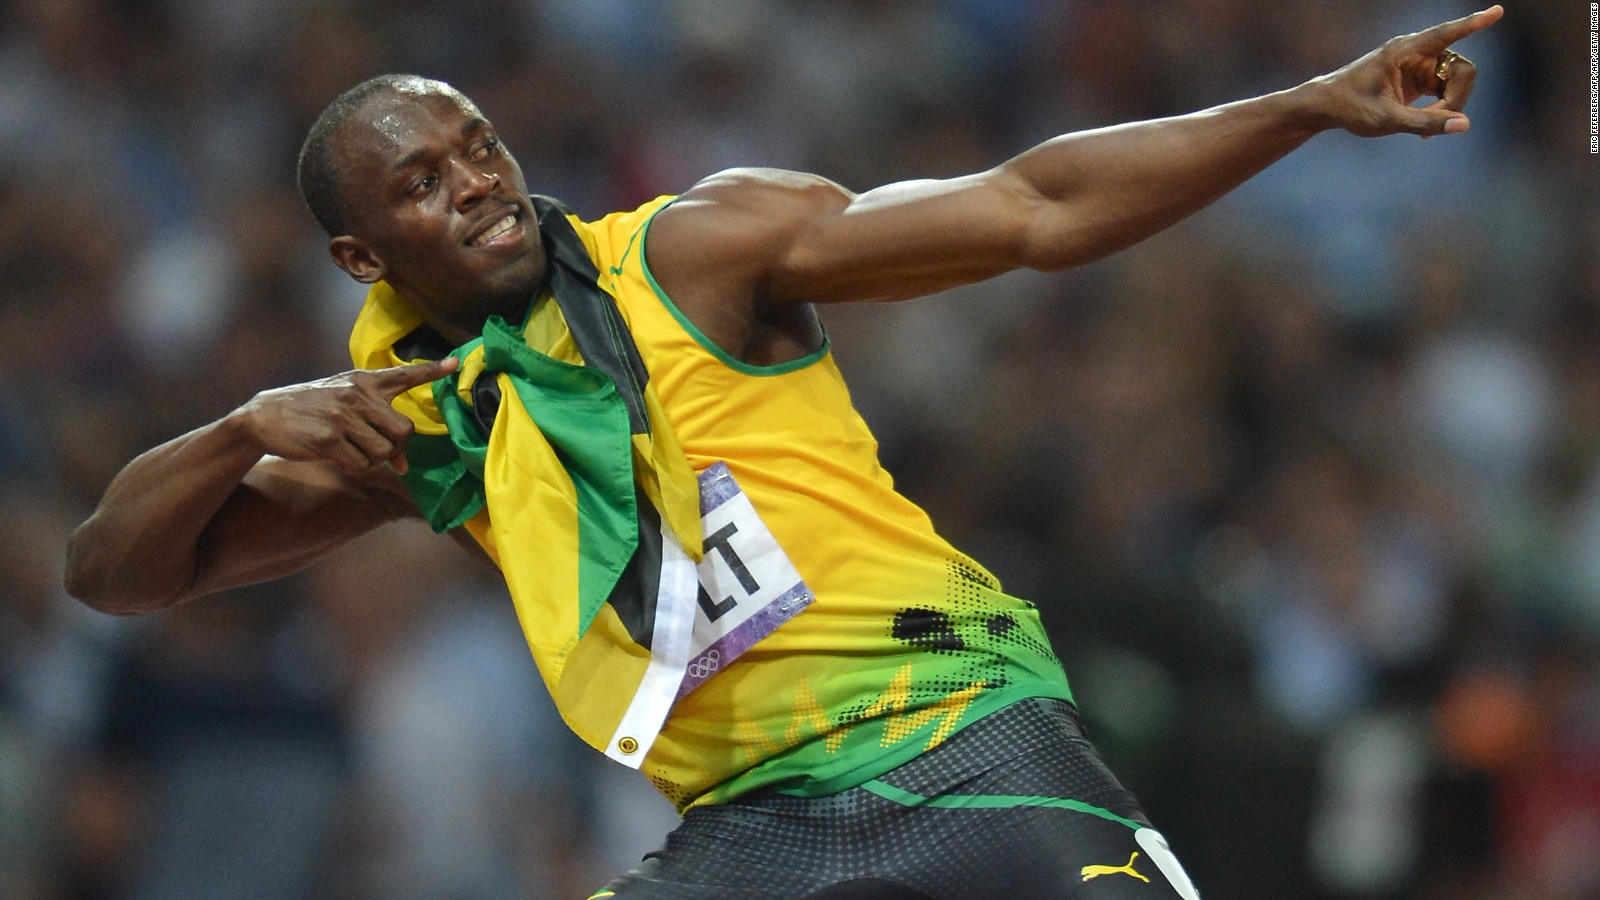 Usain Bolt My Sport Needs Me To Win Olympic Gold